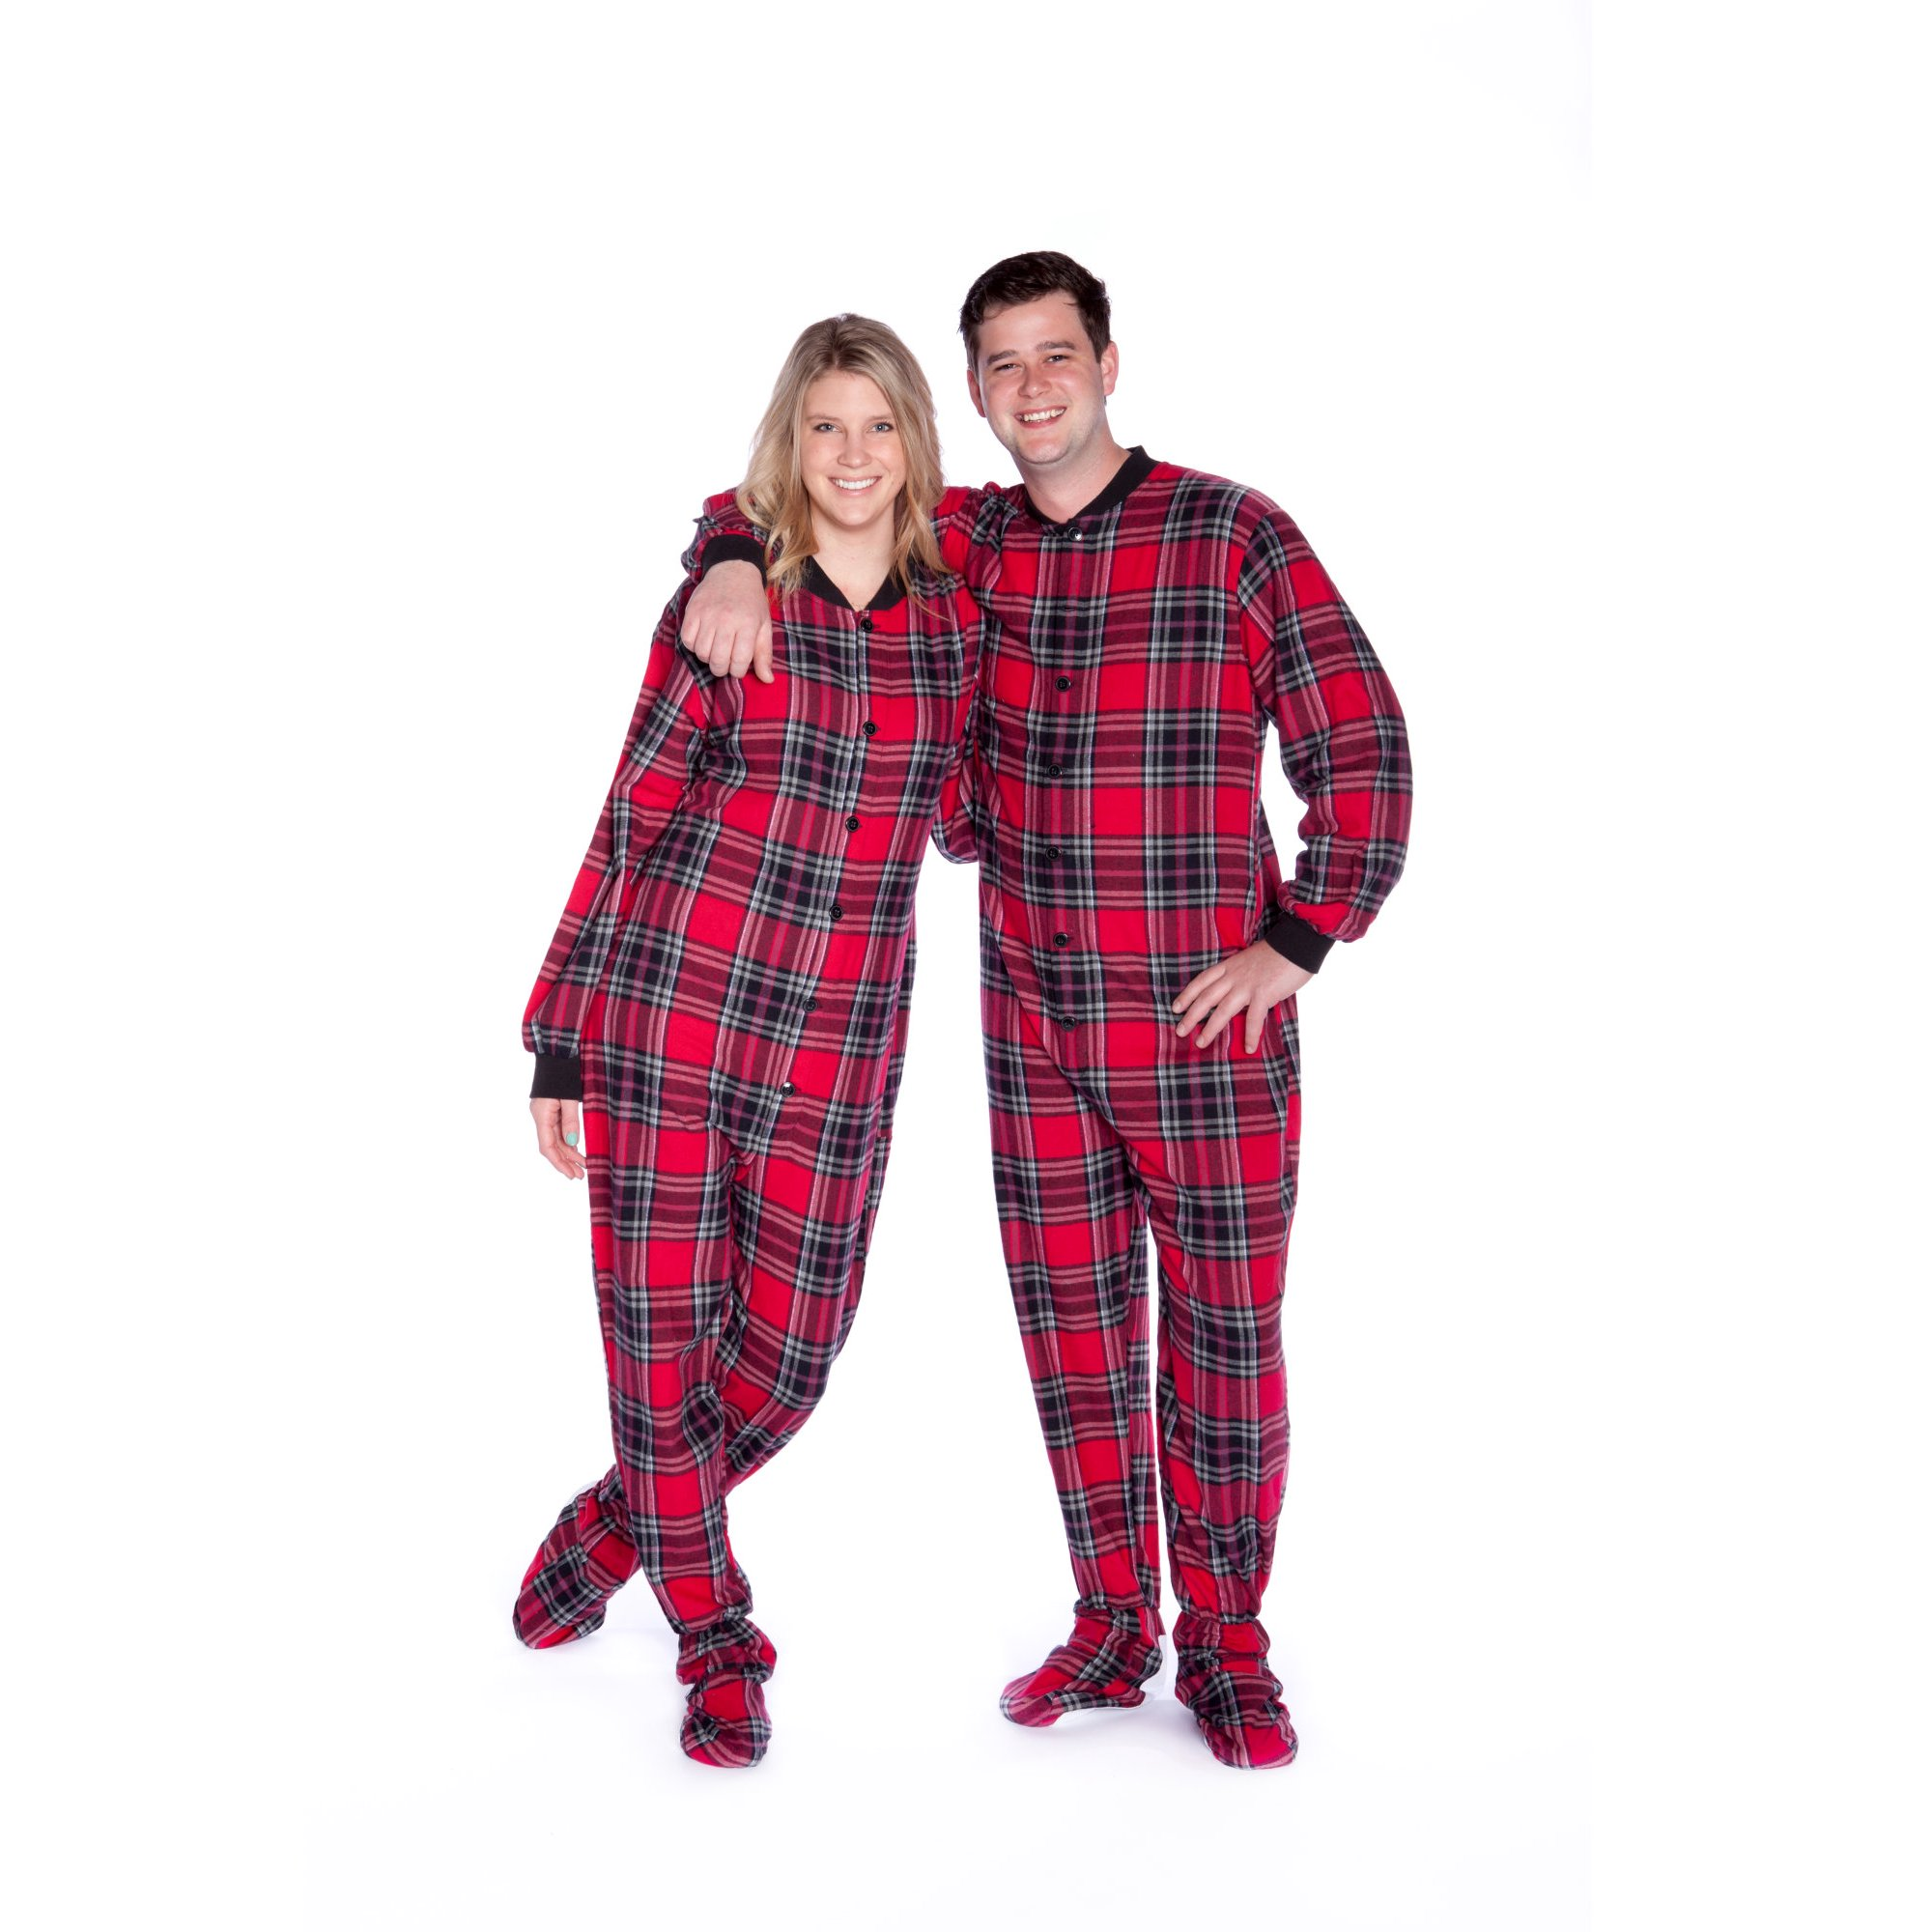 e88c006bad15 Big Feet PJs Red   Black Plaid Cotton Flannel Adult Footie Footed ...